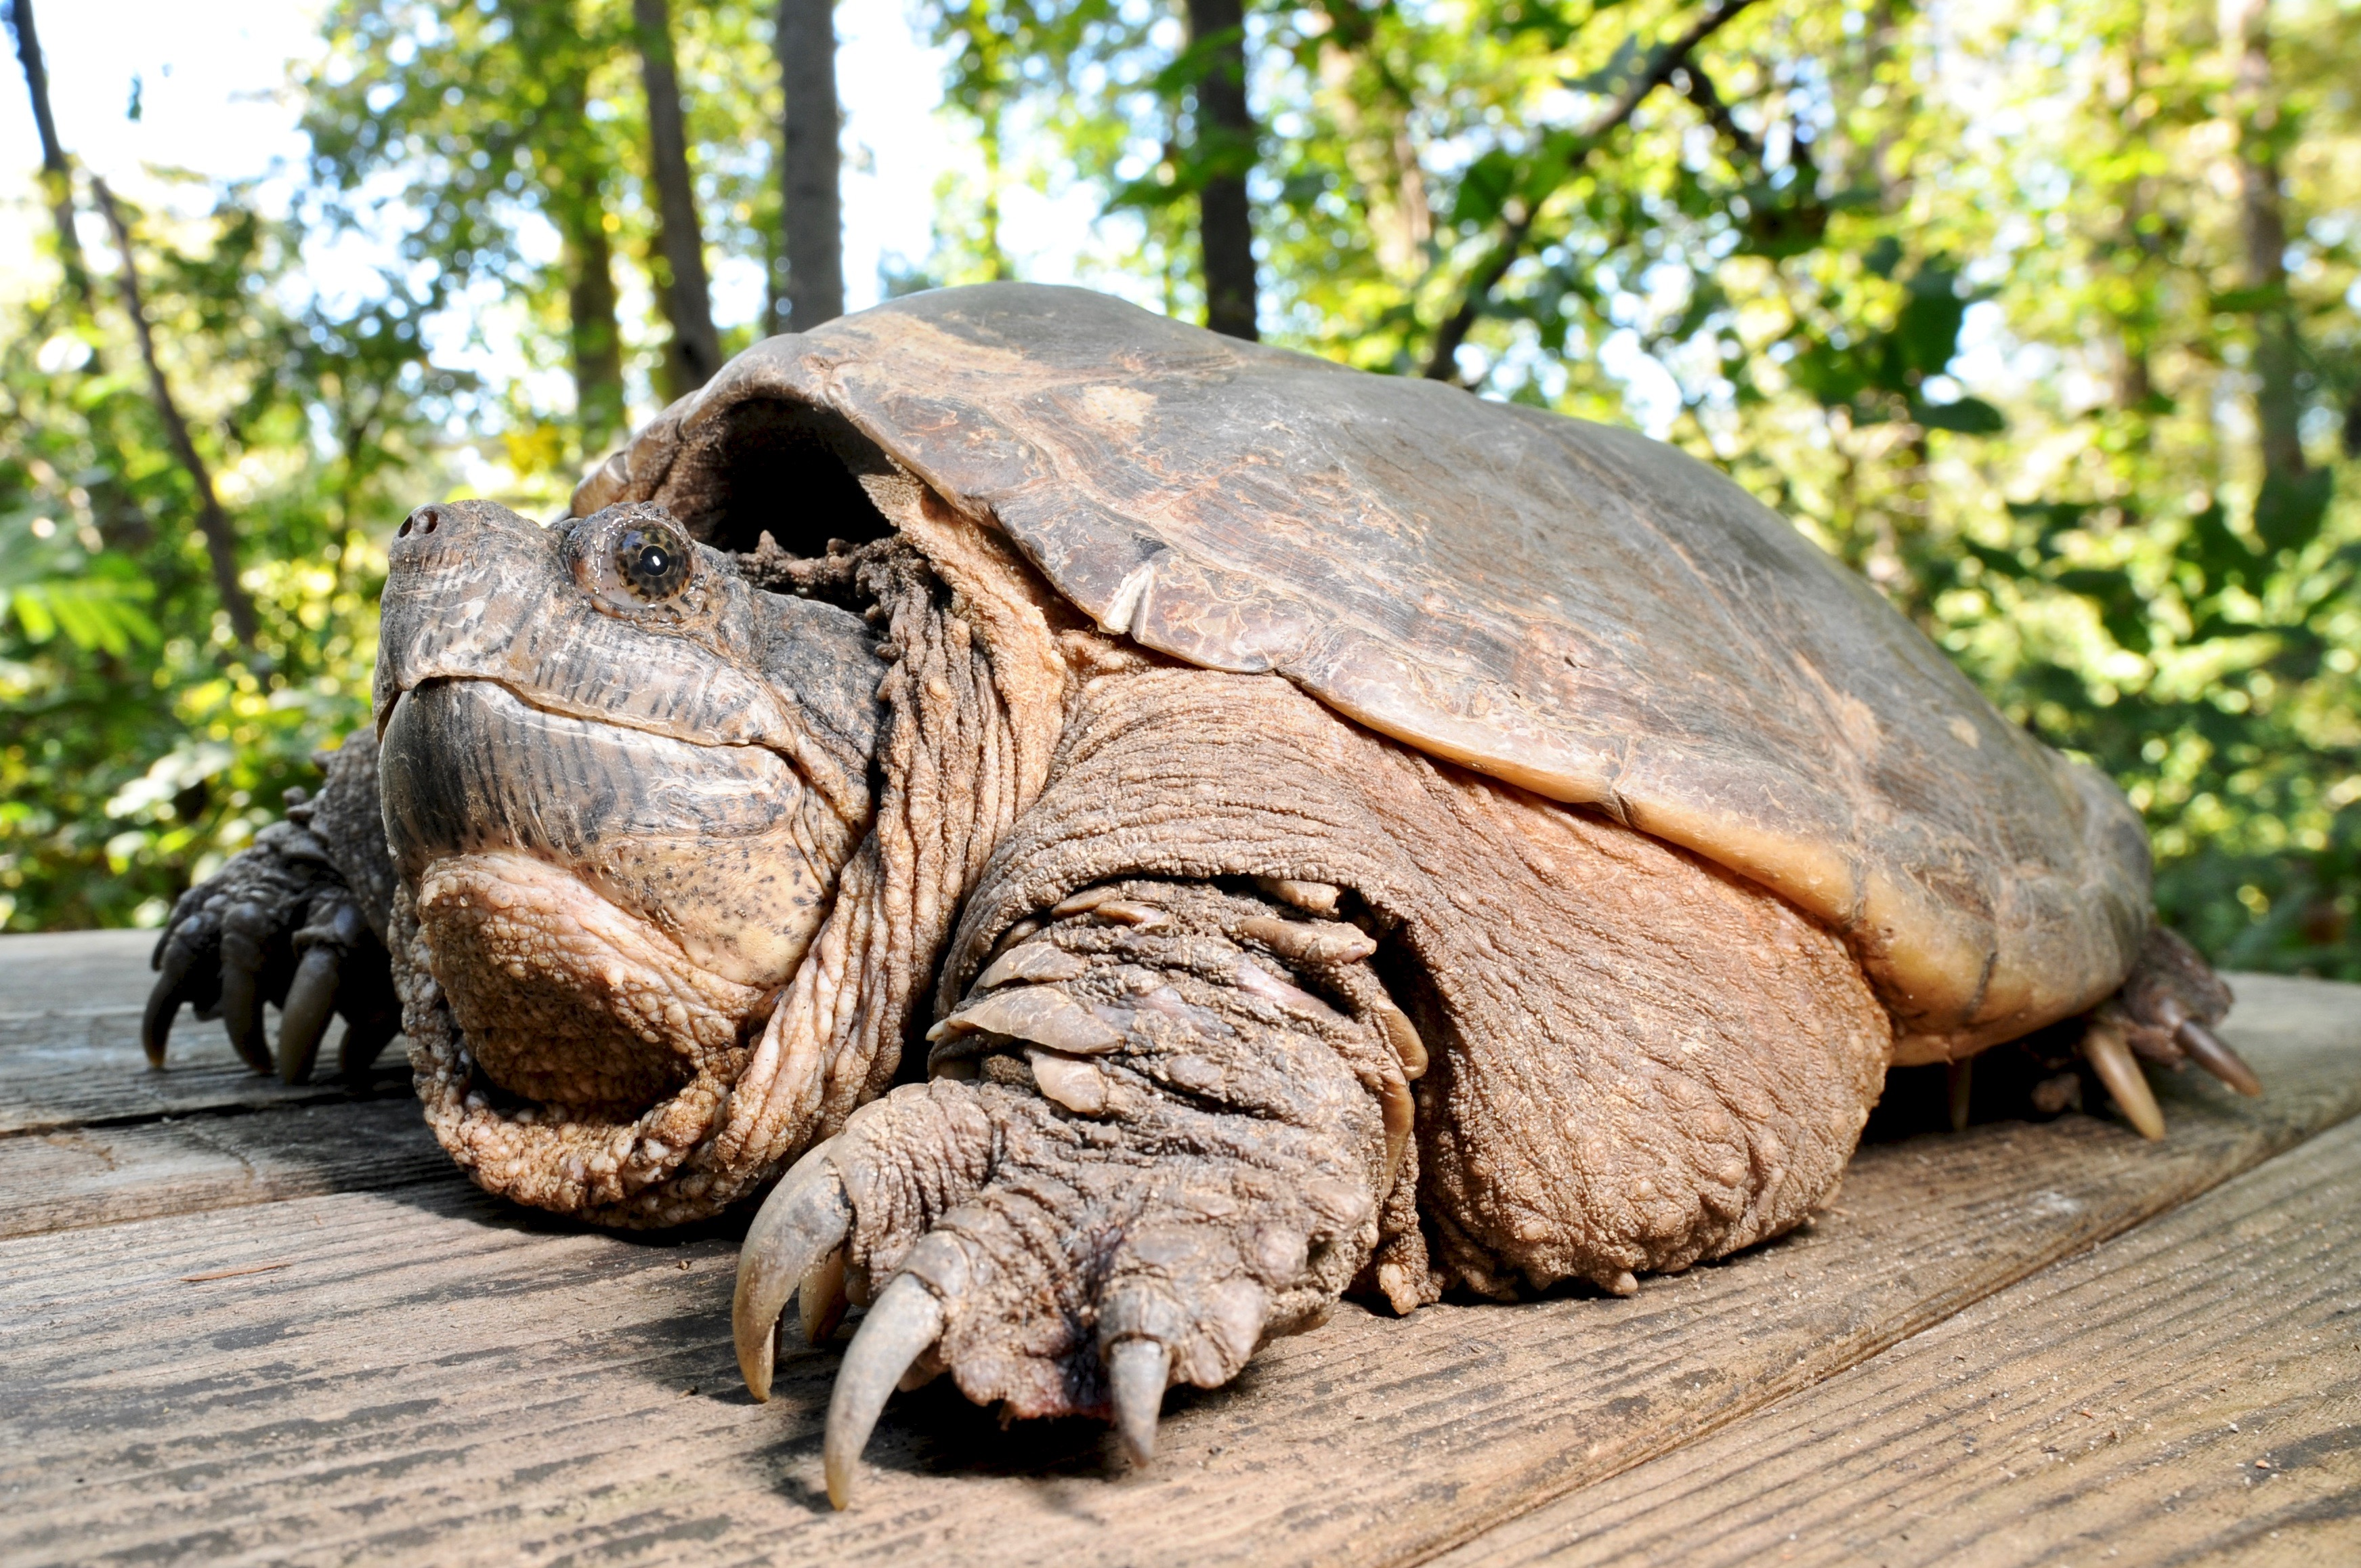 Common Snapping Turtle 134